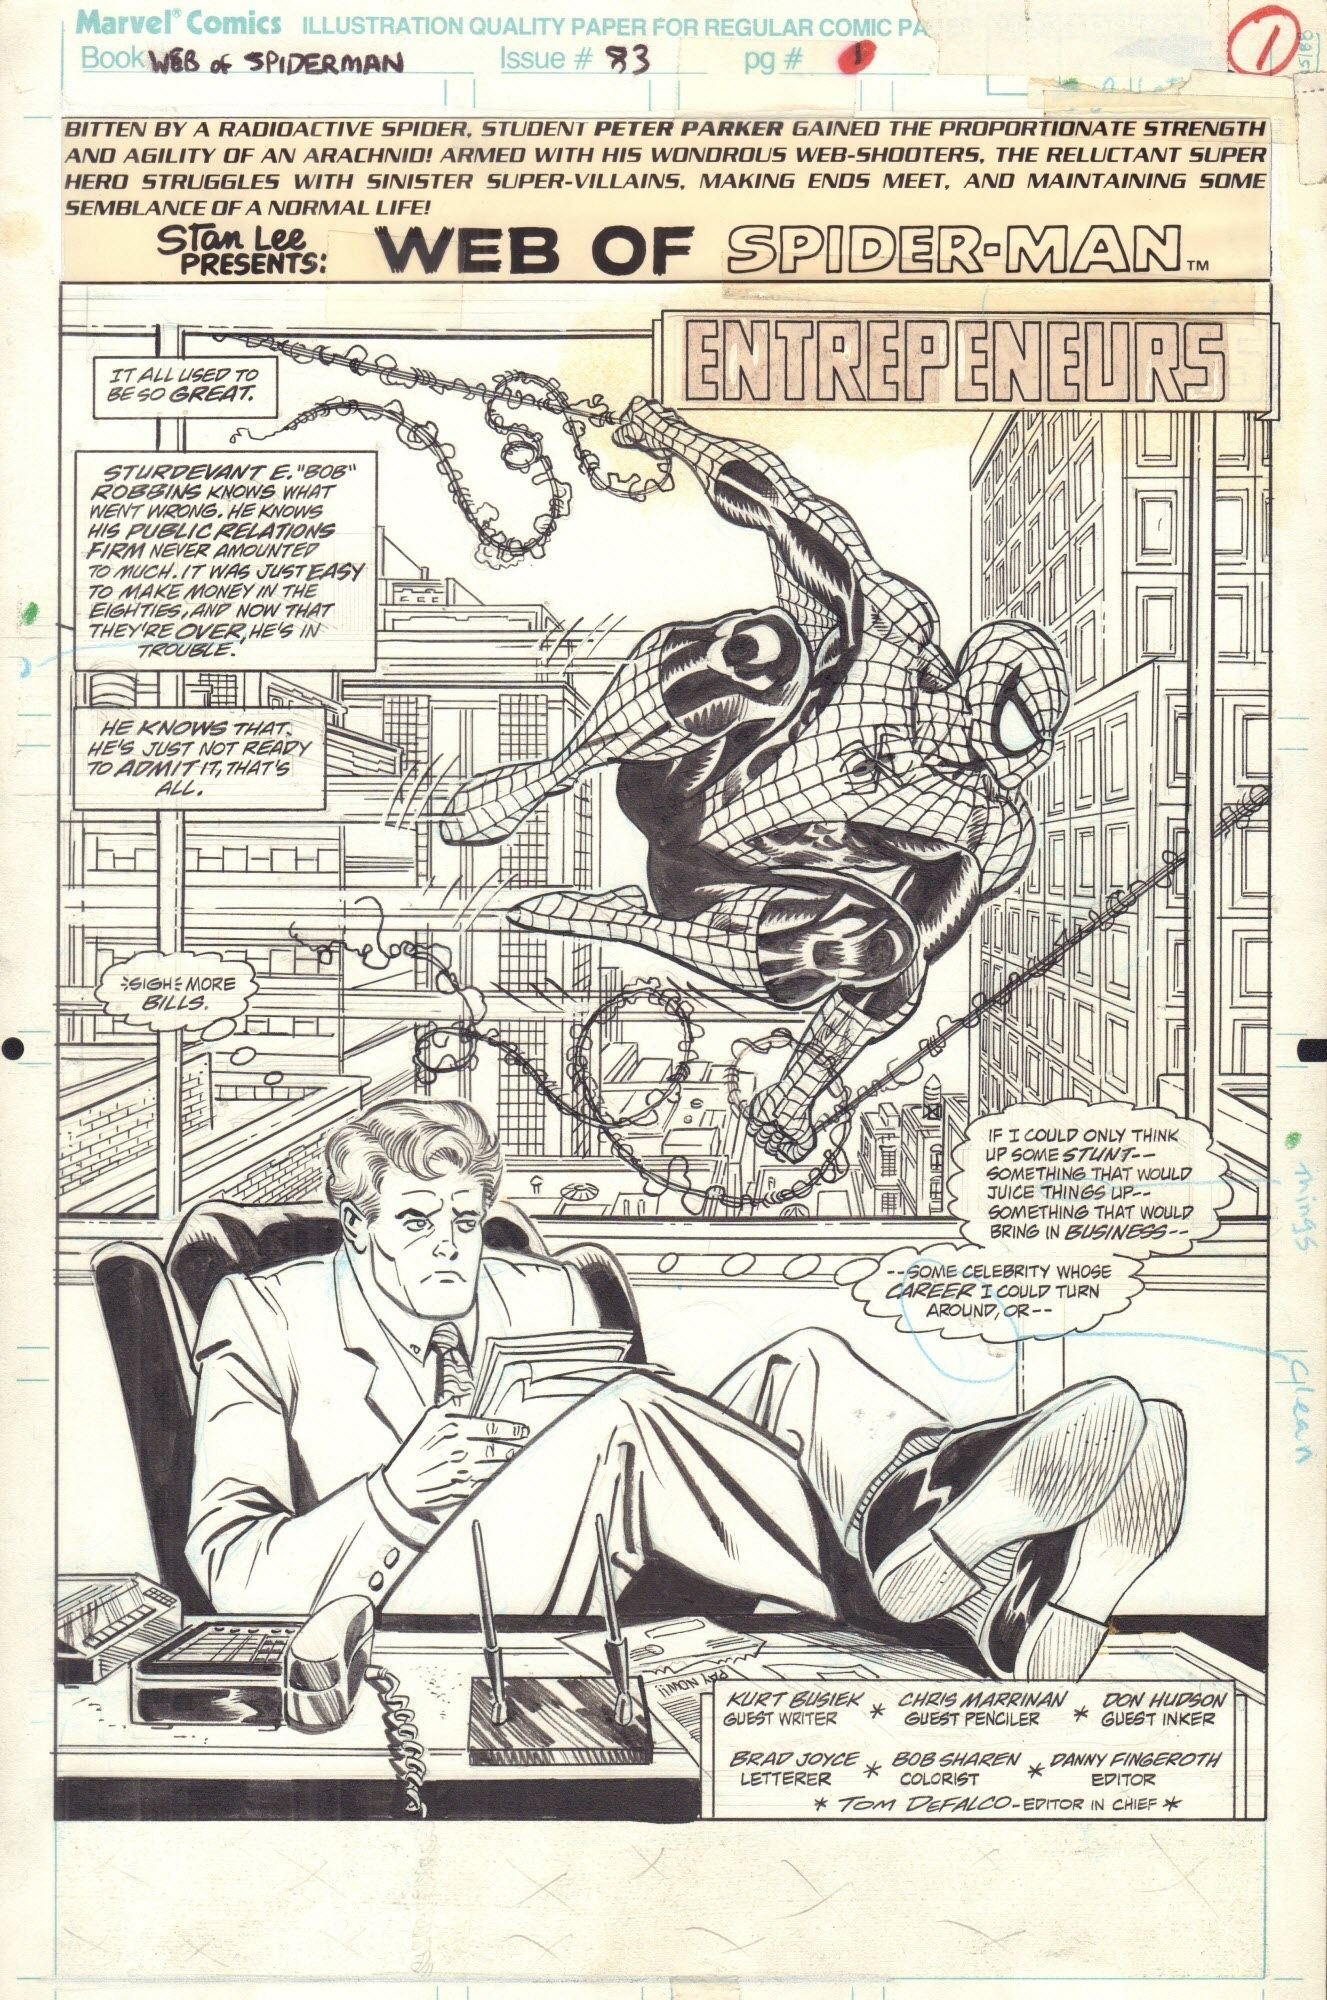 Web of Spider-Man #83 / 1